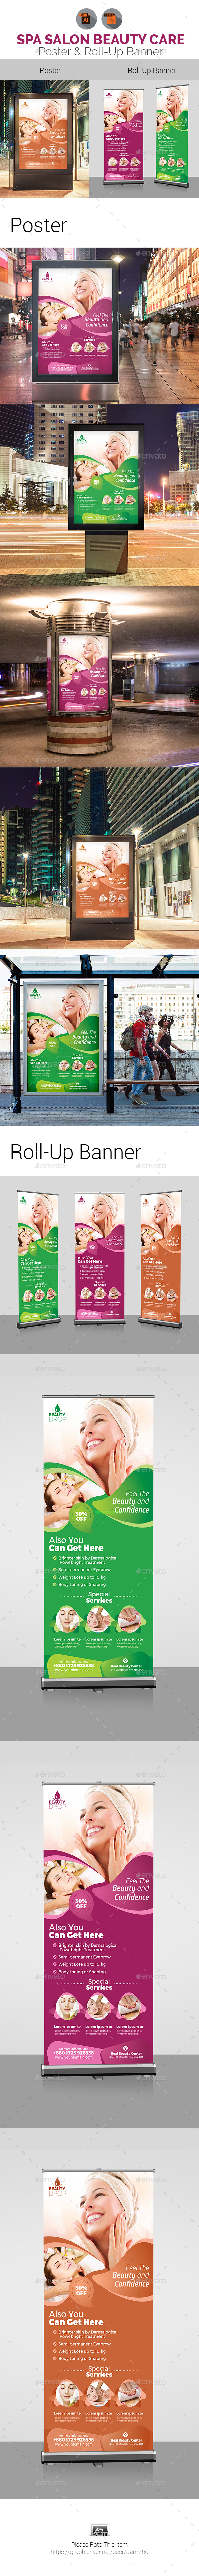 Spa | Beauty Salon Poster & Roll Up Banner - Signage Print Templates